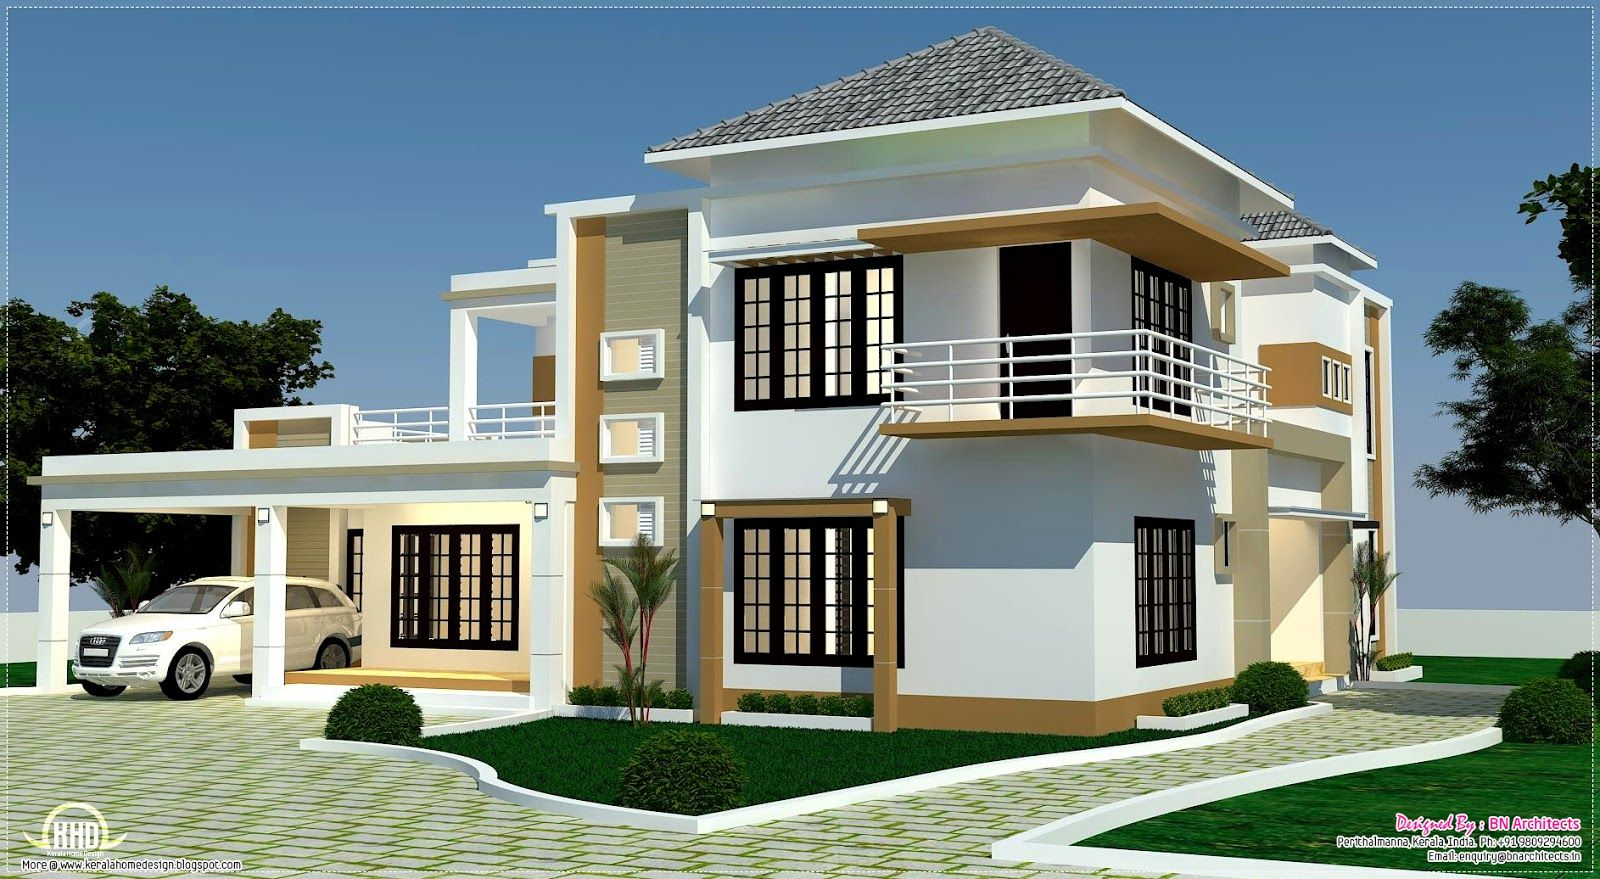 Home Plans One Room School Floor plan, 3D views and